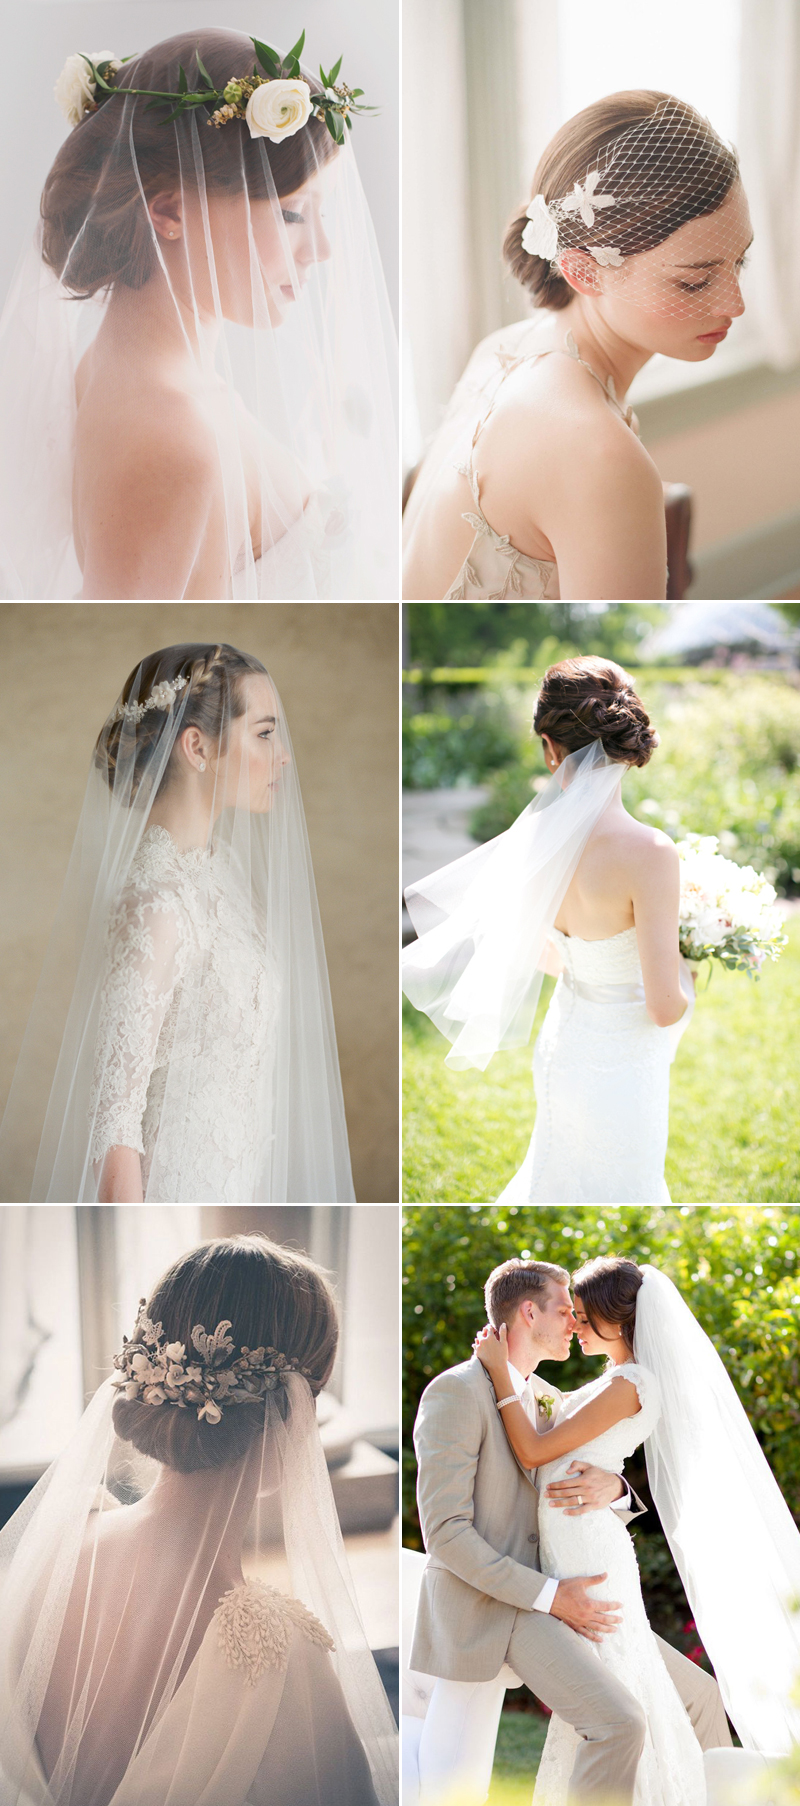 Chic bridal hairstyles that look good with veils praise wedding hairveil01 lowchignon junglespirit